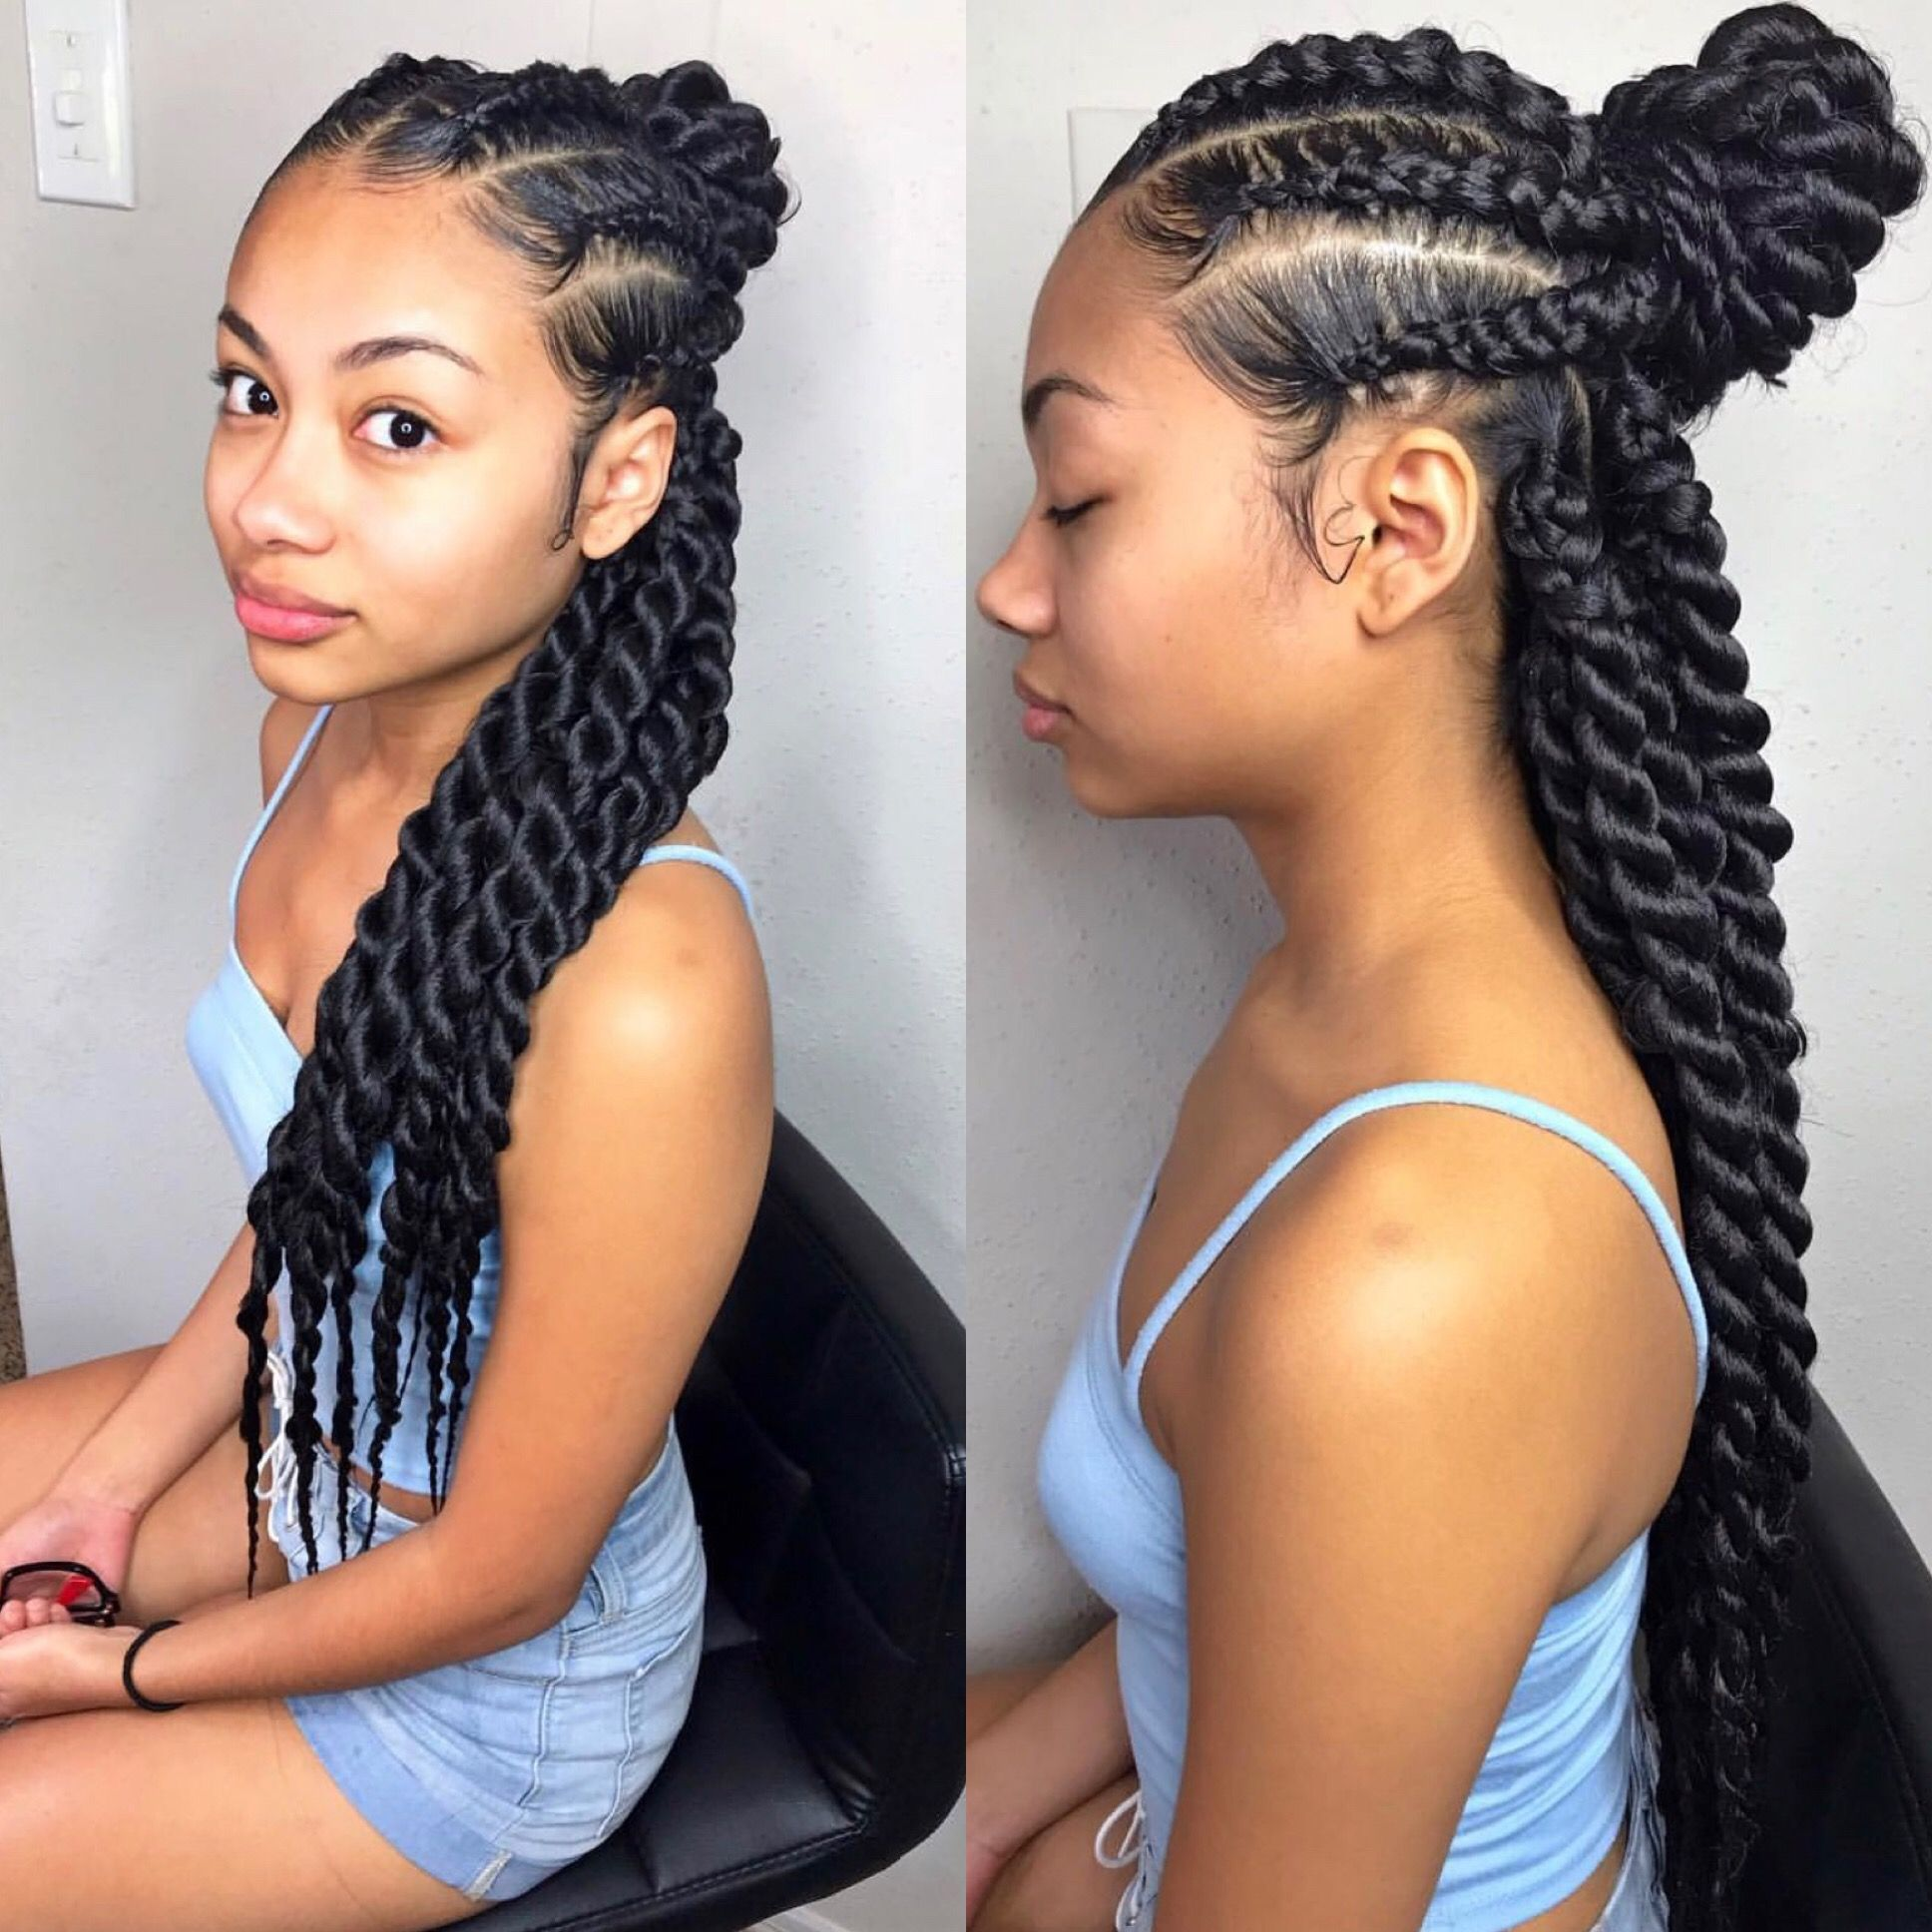 15 Best Braid Hairstyles For Black Women To Try These Days